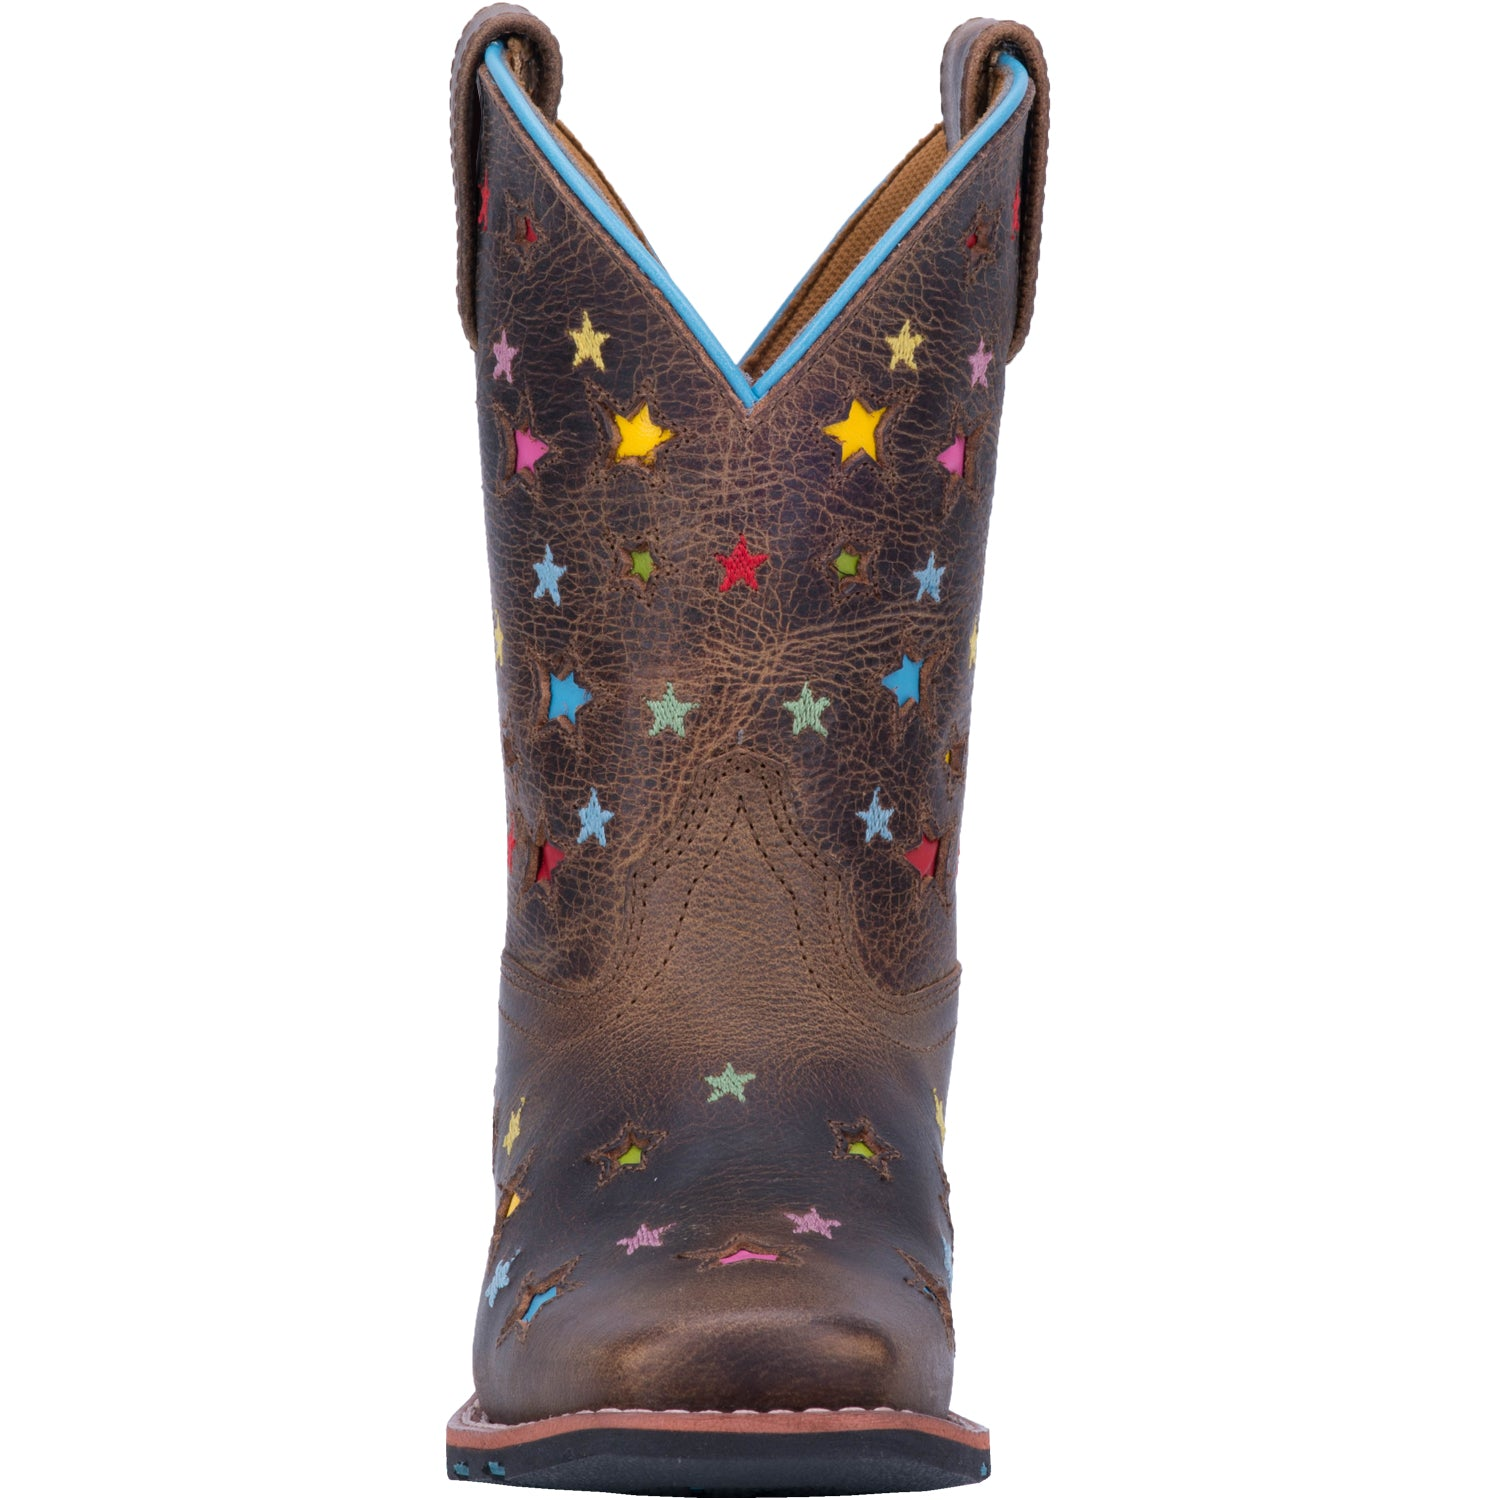 STARLETT LEATHER CHILDREN'S BOOT 4197205114922